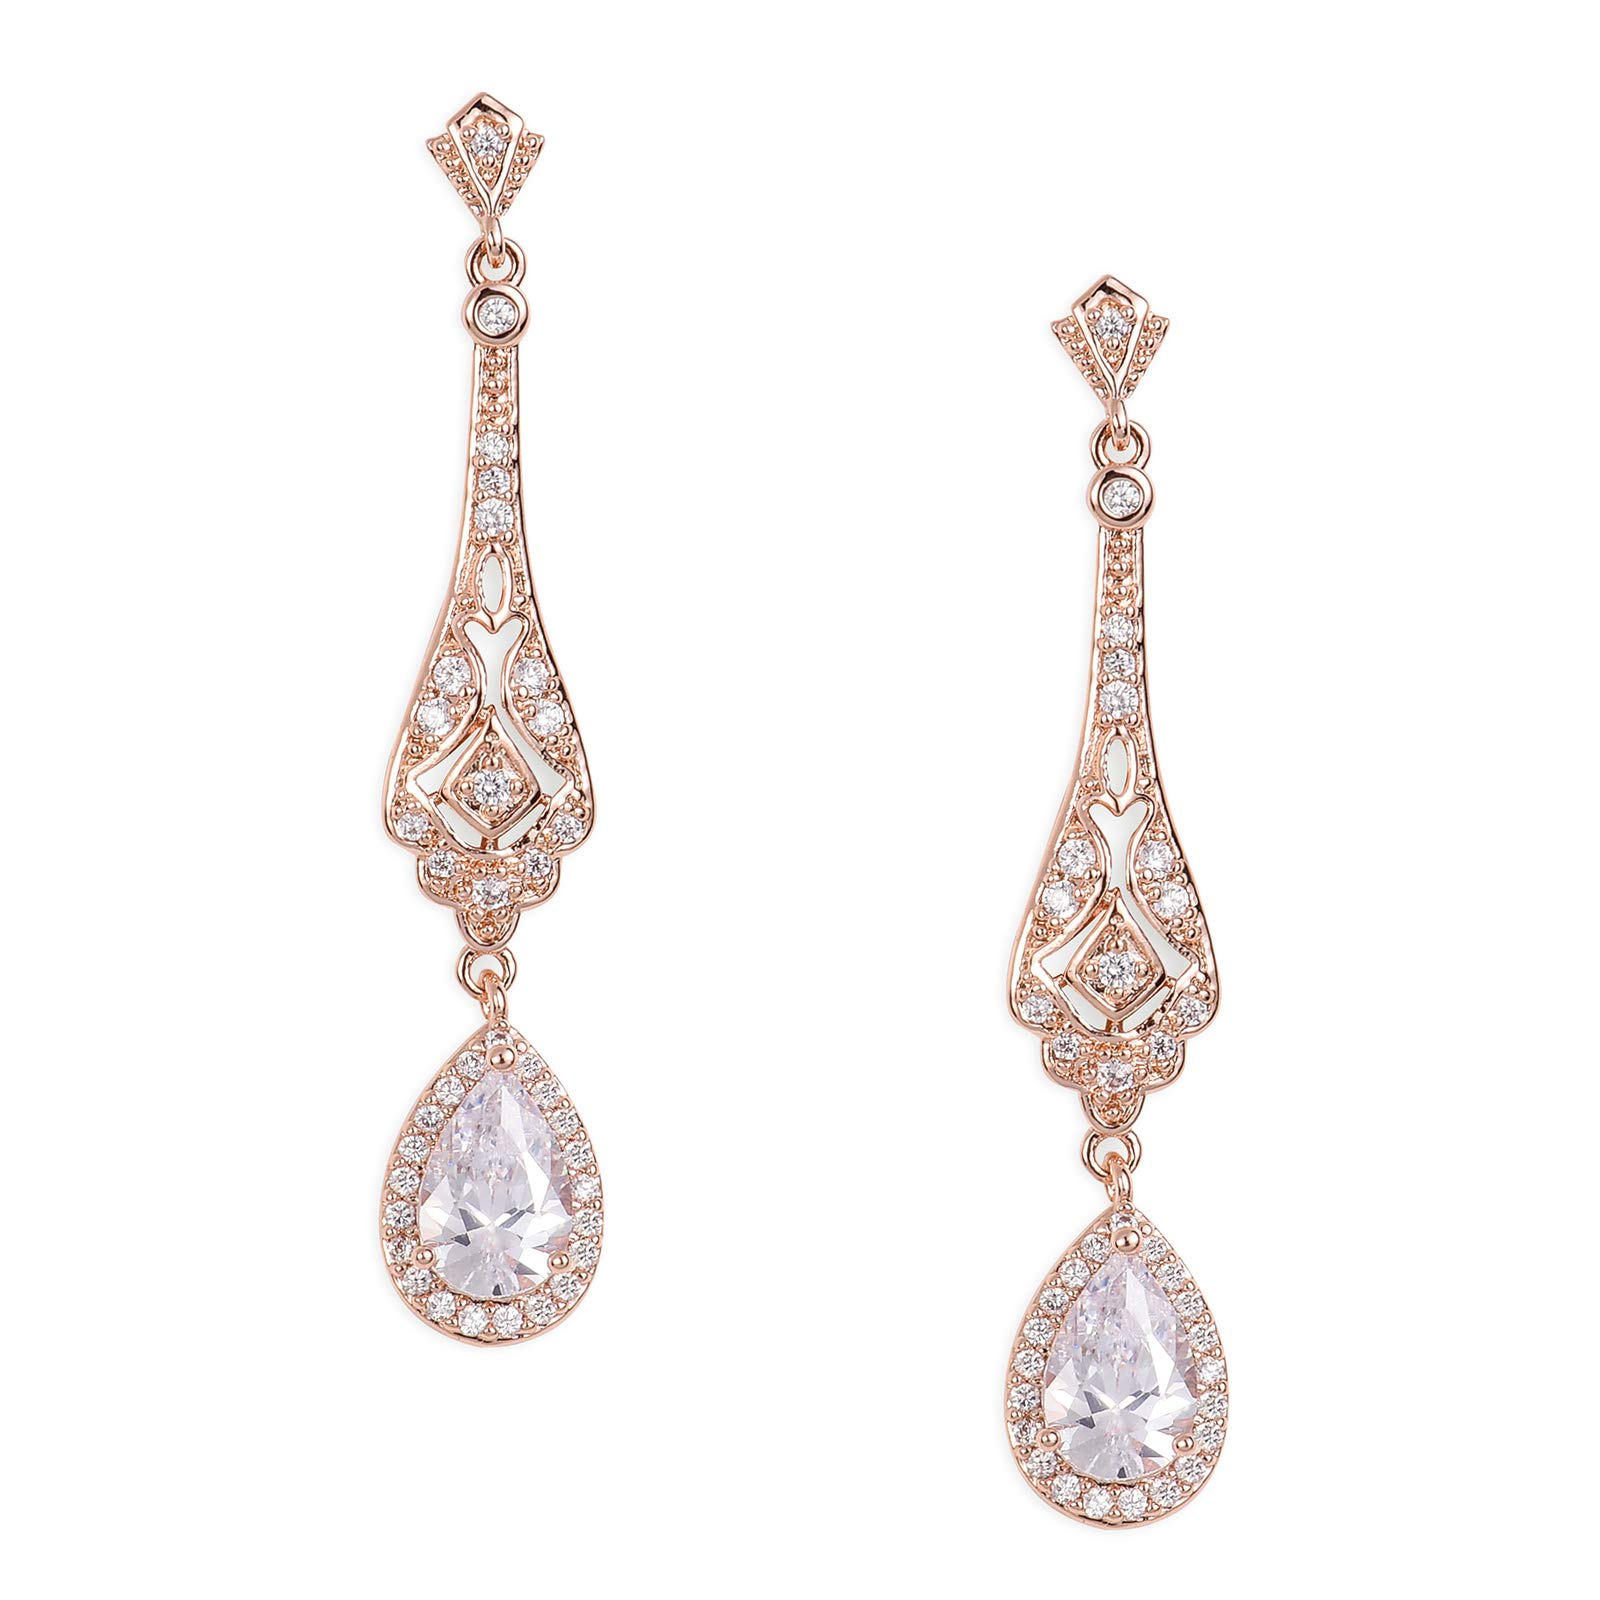 SWEETV Slender Teardrop Cubic Zirconia Vintage Dangle Earrings Rose Gold-Bridal Wedding Style Jewelry for Women Brides,Bridesmaids by SWEETV (Image #1)